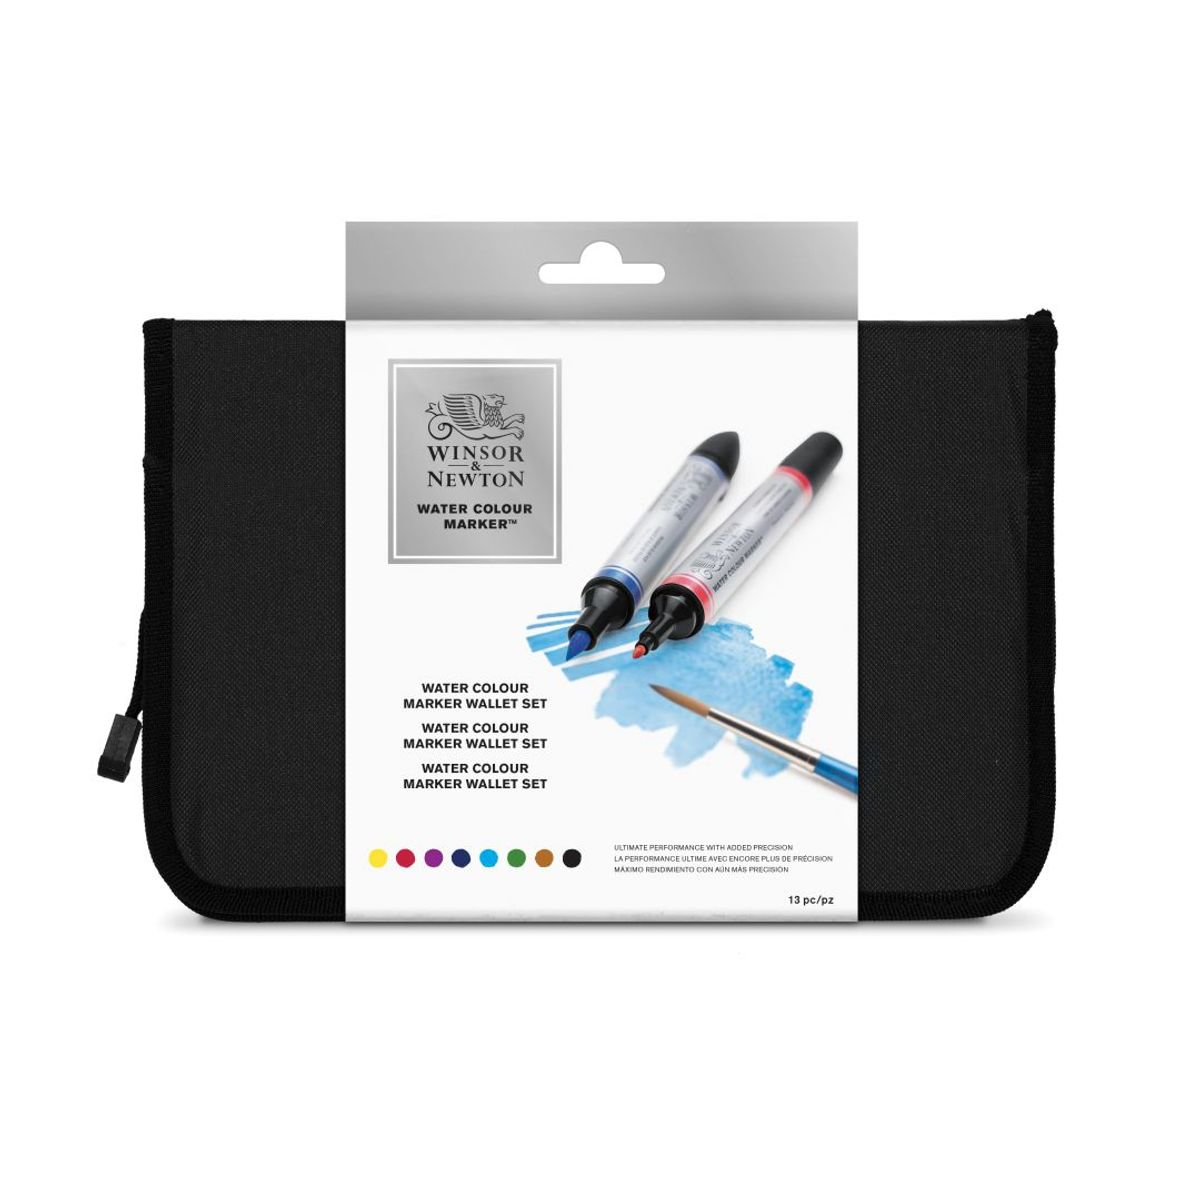 37b3a7229c80 sold-out-image Winsor   Newton WATER COLOUR MARKER - Twin Tip  Brush + fine  - Water based